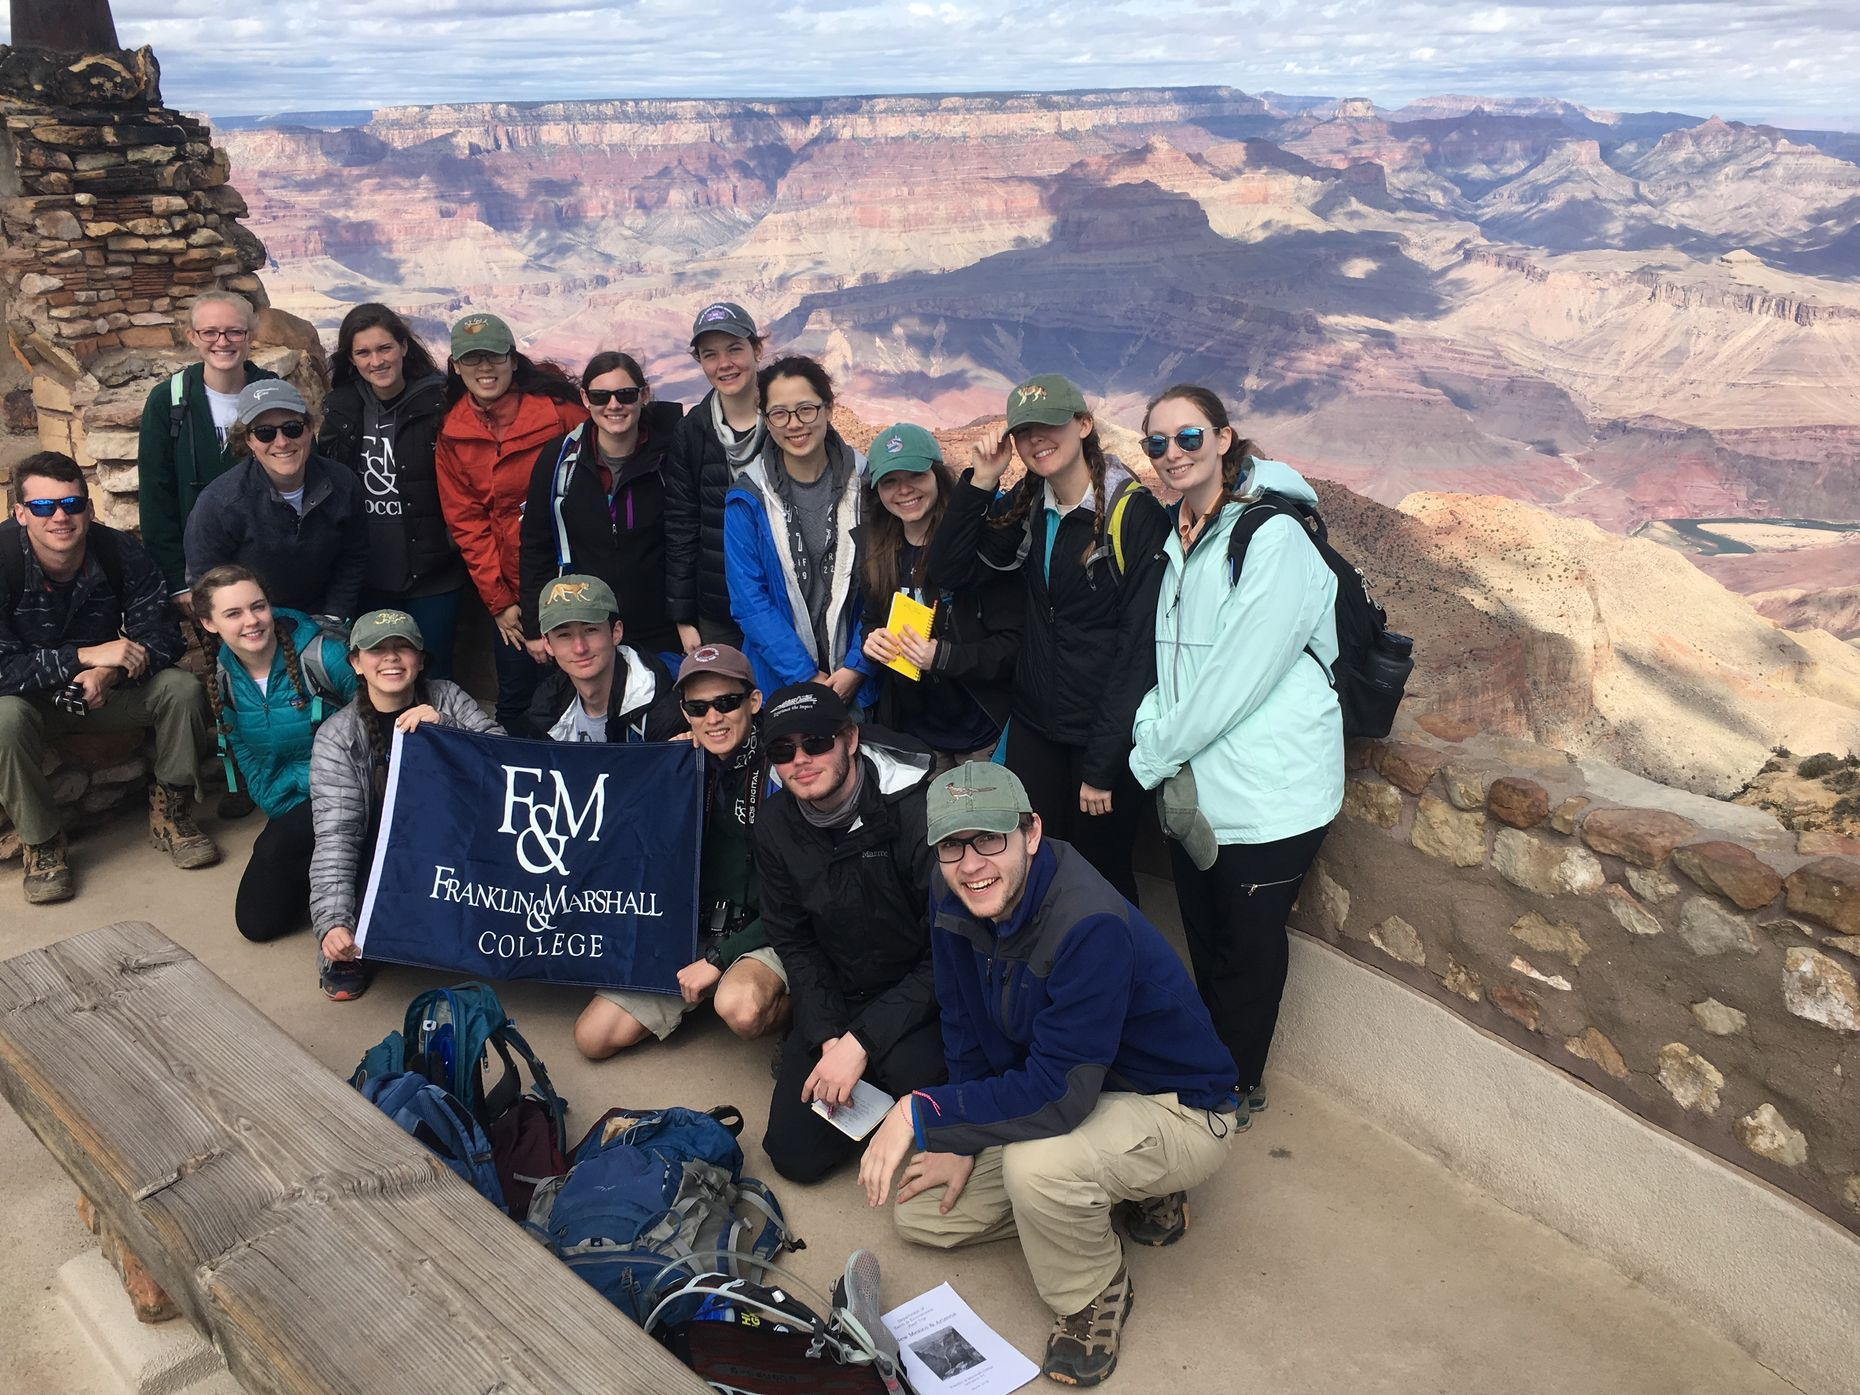 F&M students a the Grand Canyon 2018